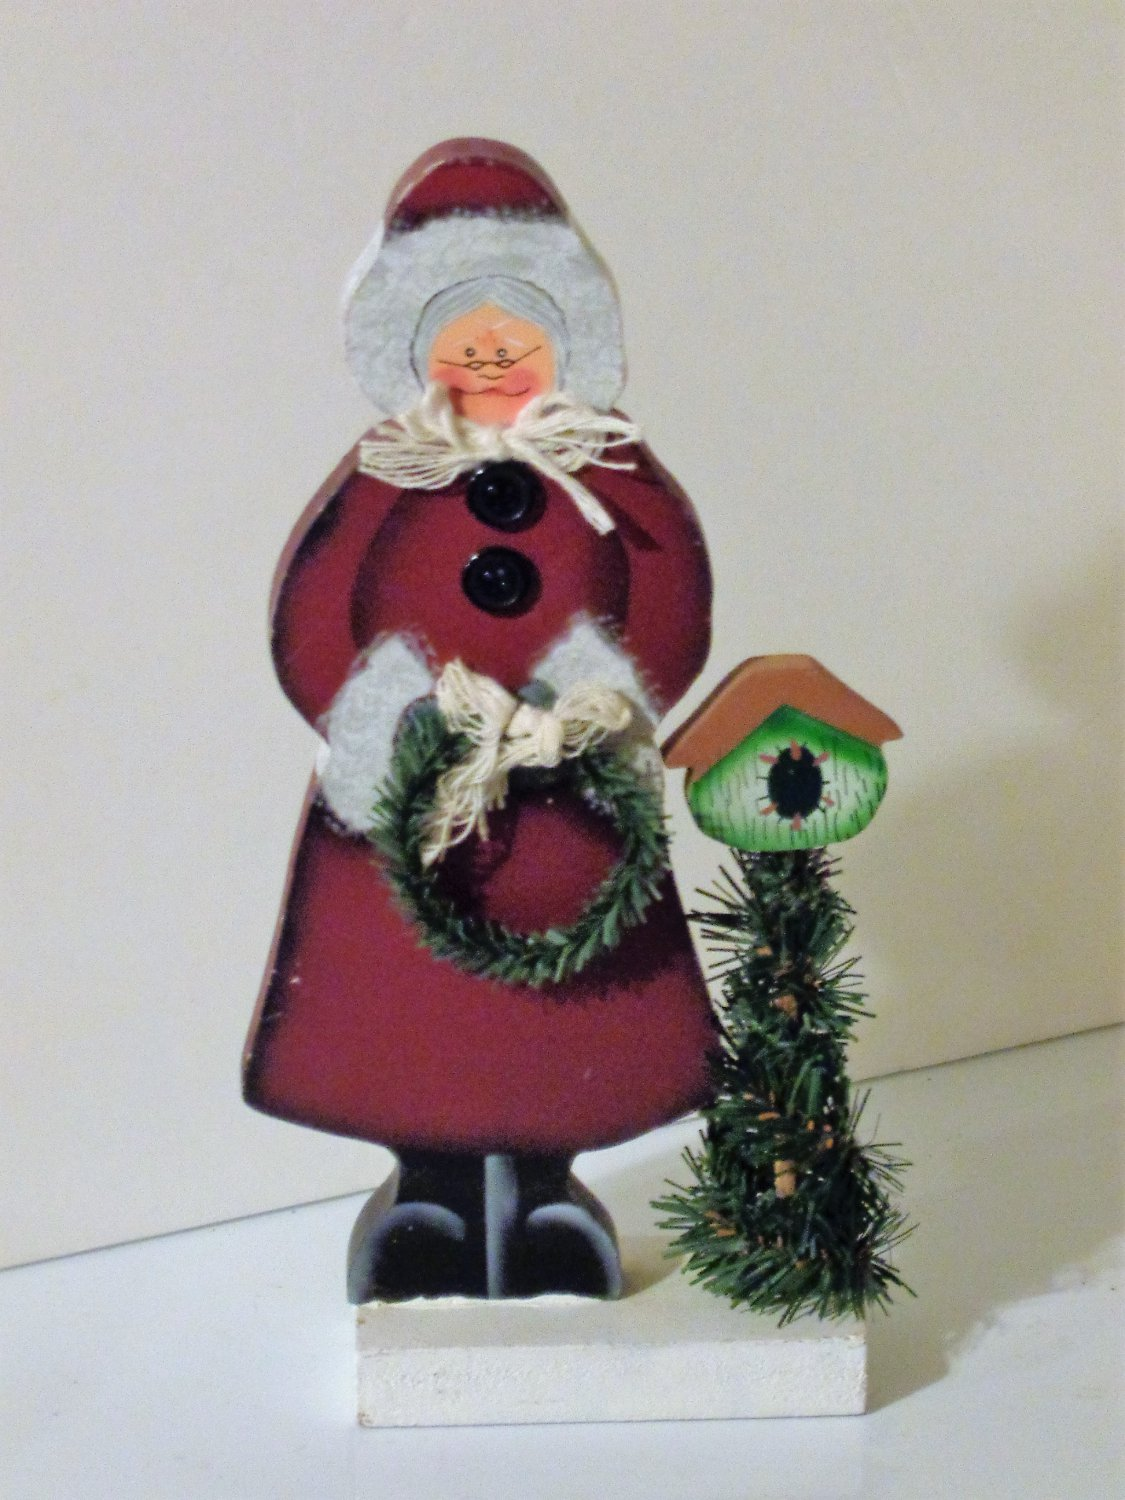 Mrs. Santa Claus Wooden Figurine Wreath Birdhouse